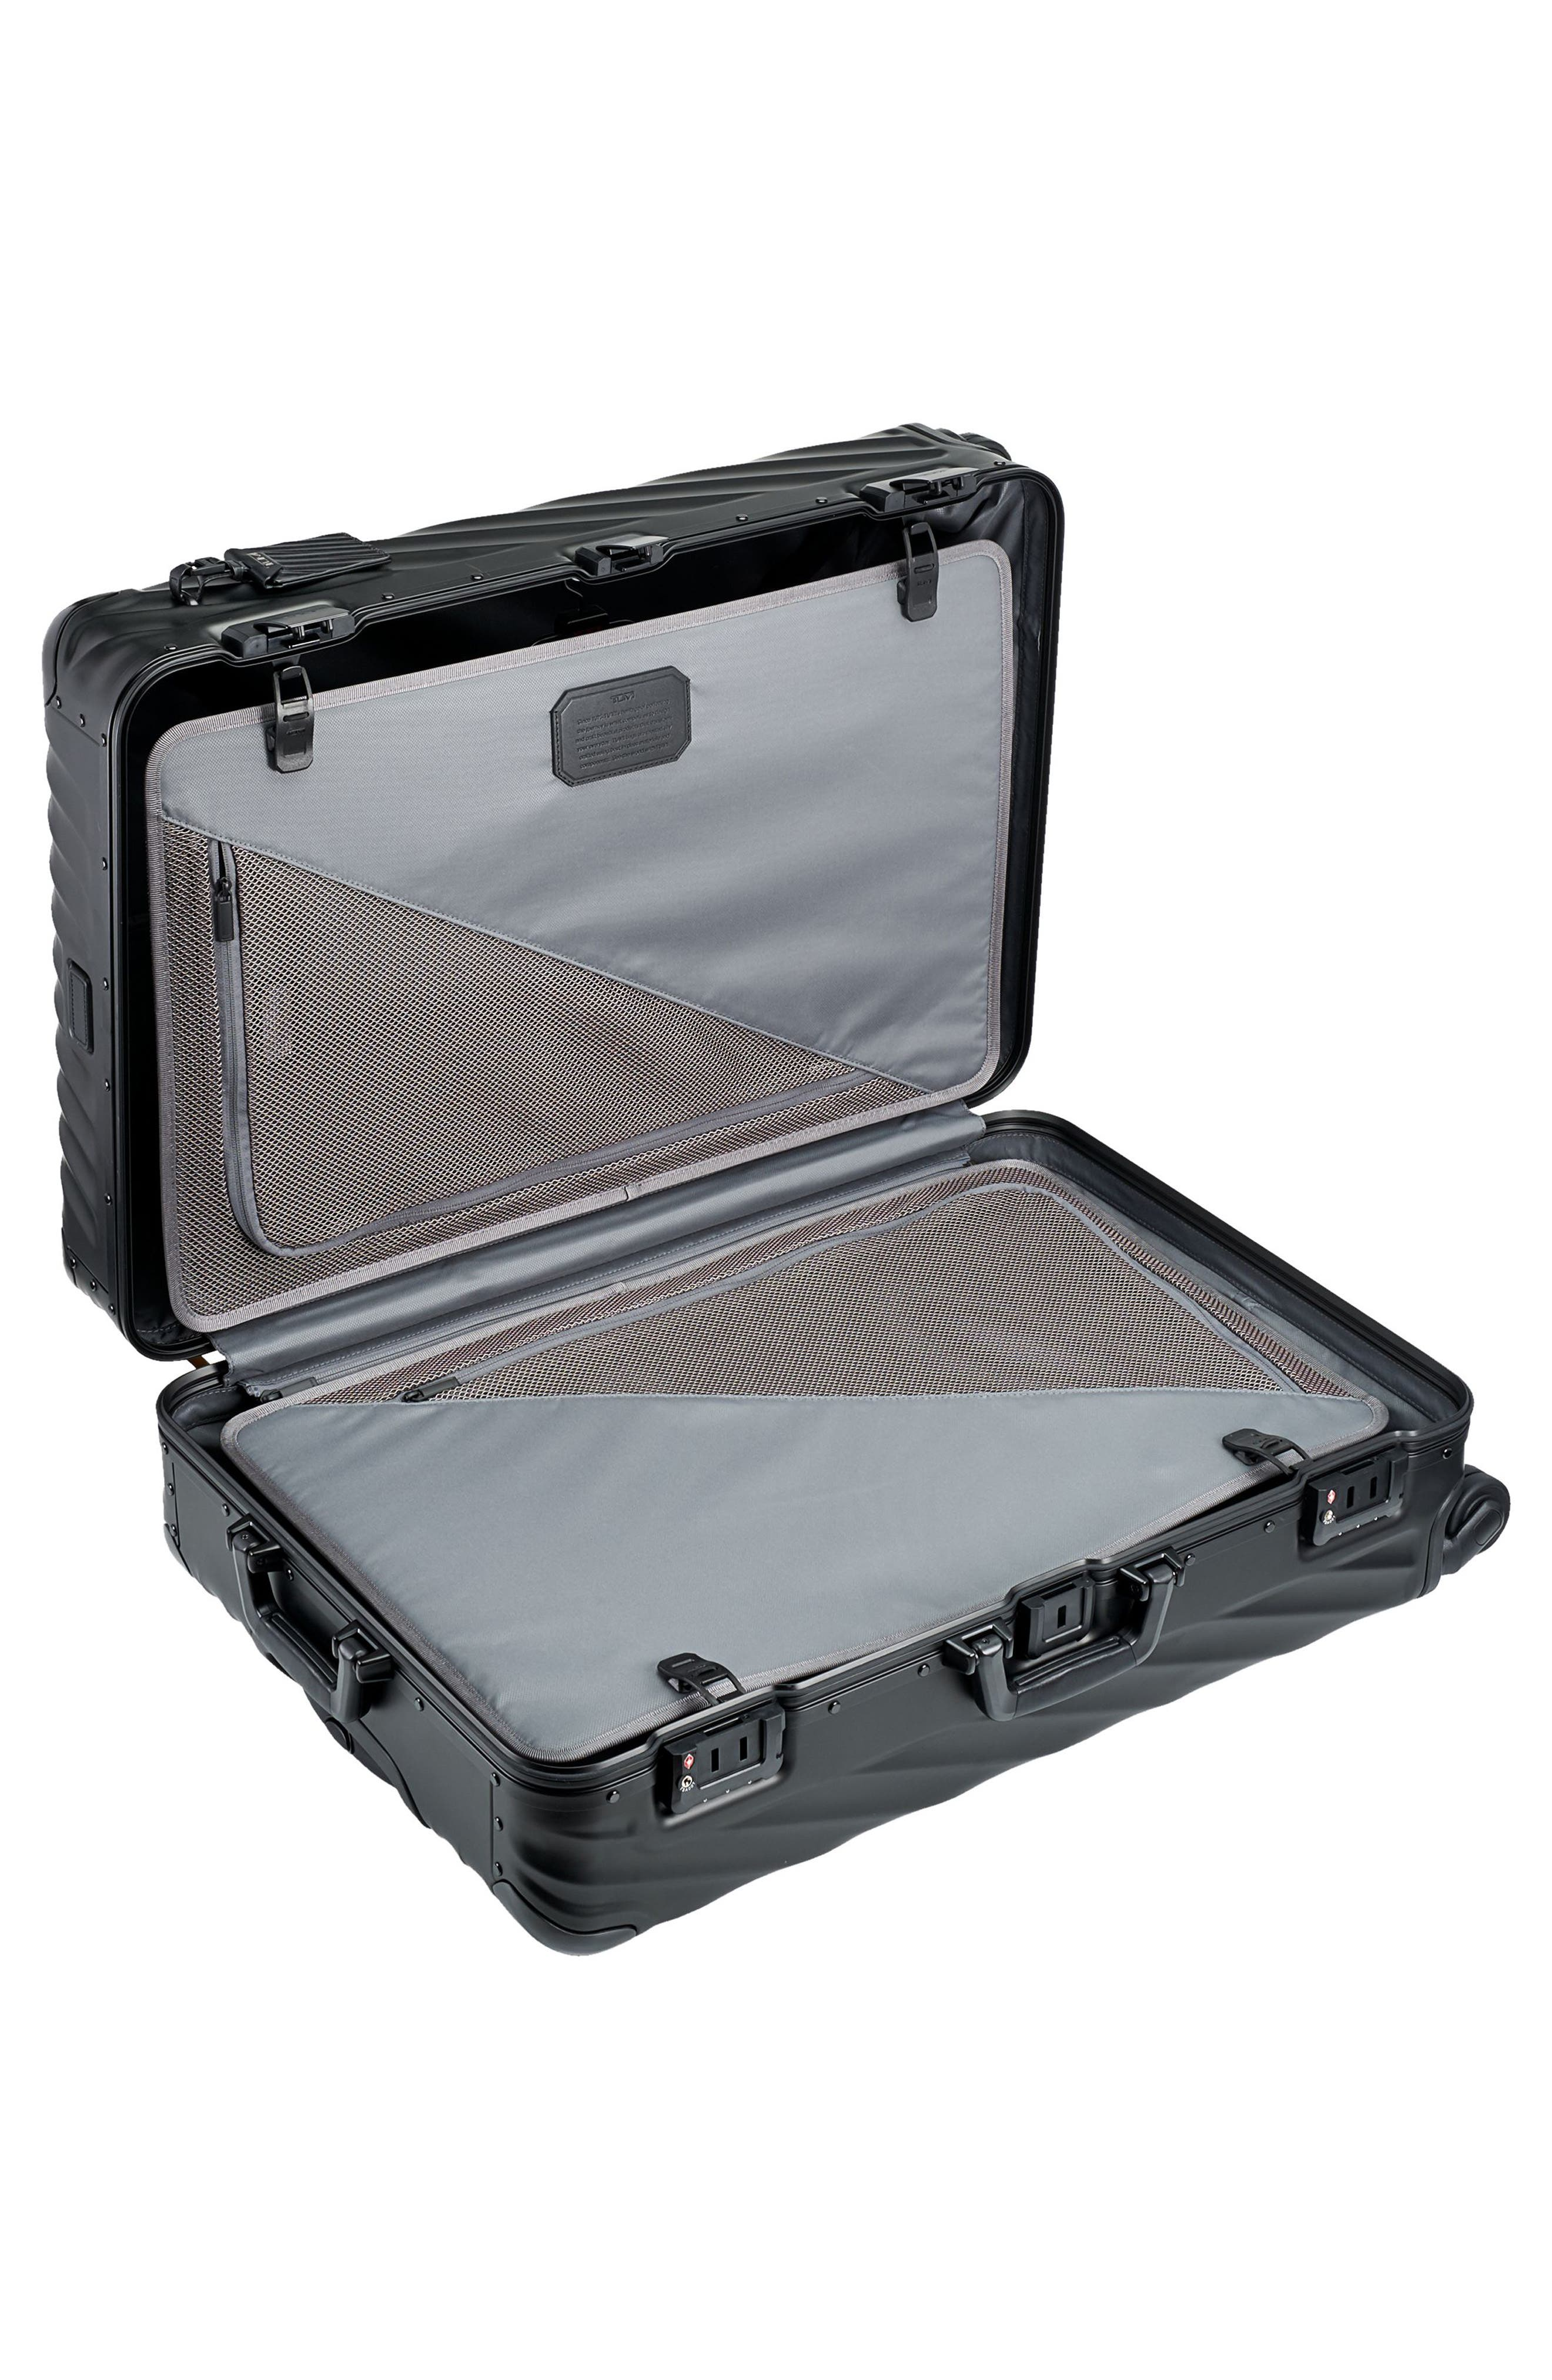 19 Degree 31-Inch Extended Trip Wheeled Aluminum Packing Case,                             Alternate thumbnail 6, color,                             MATTE BLACK